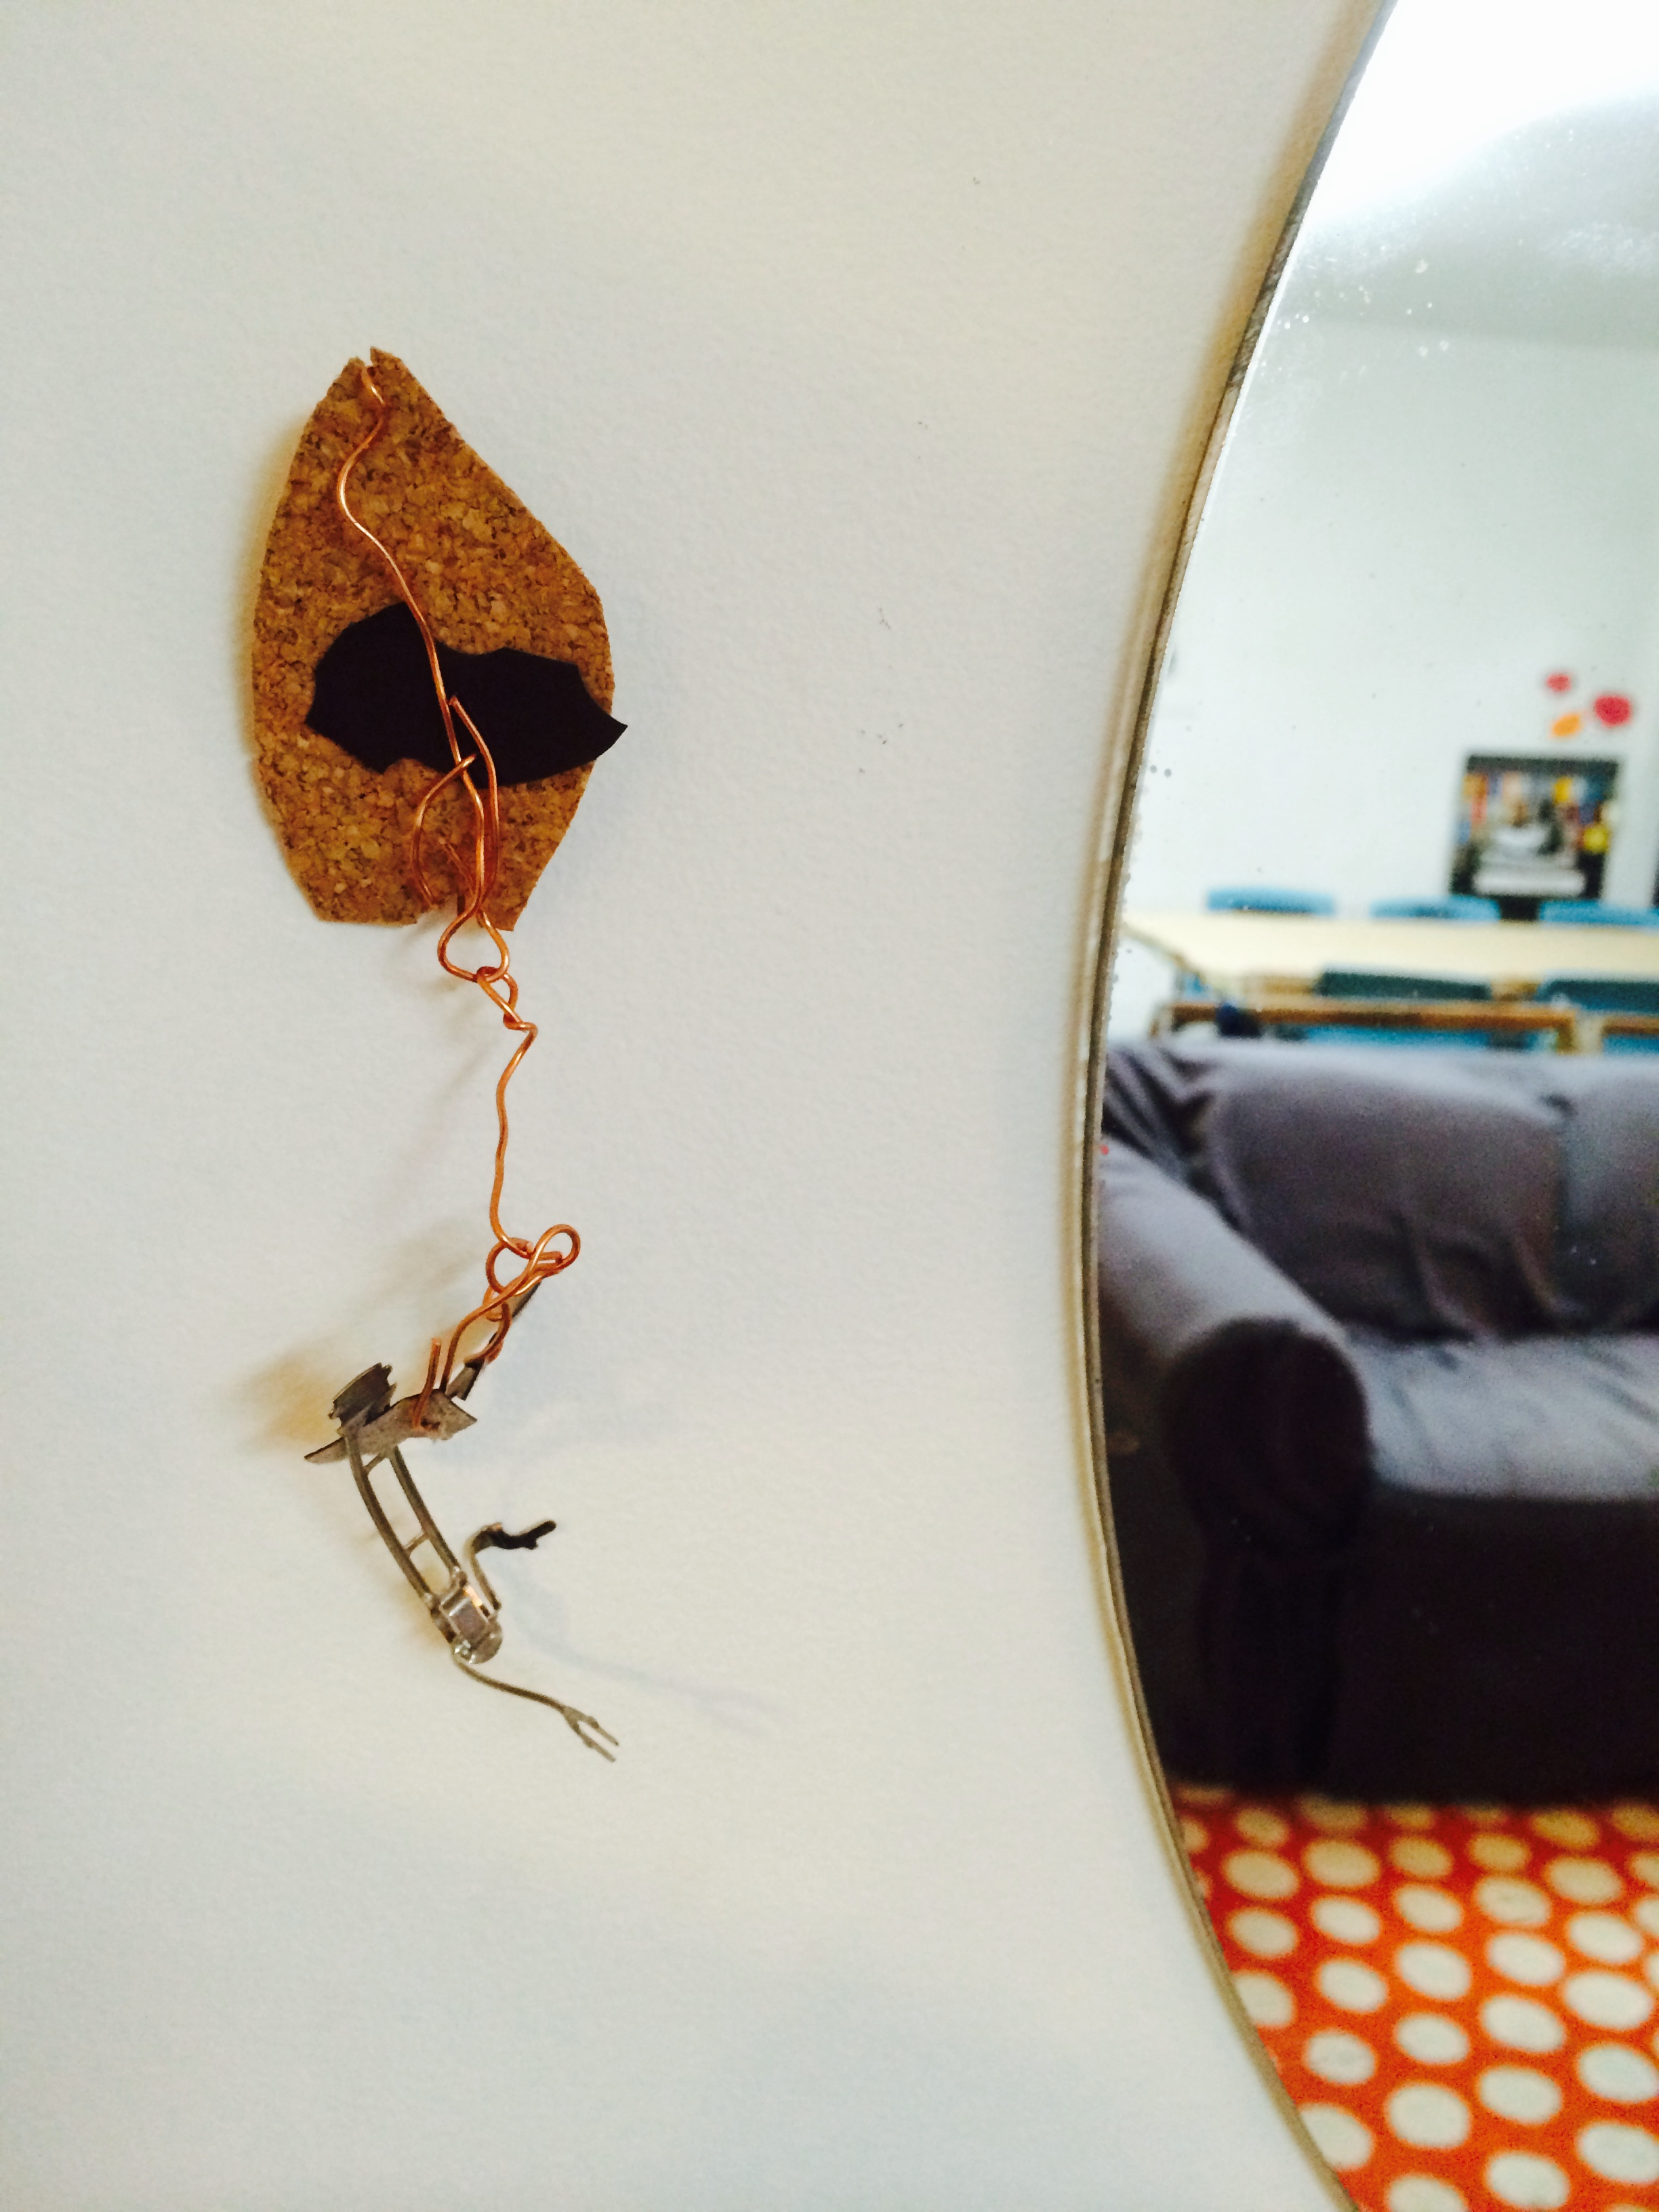 And a final little moment from today: lovely kite sculpture from wire, found objects from the metal category and cork.